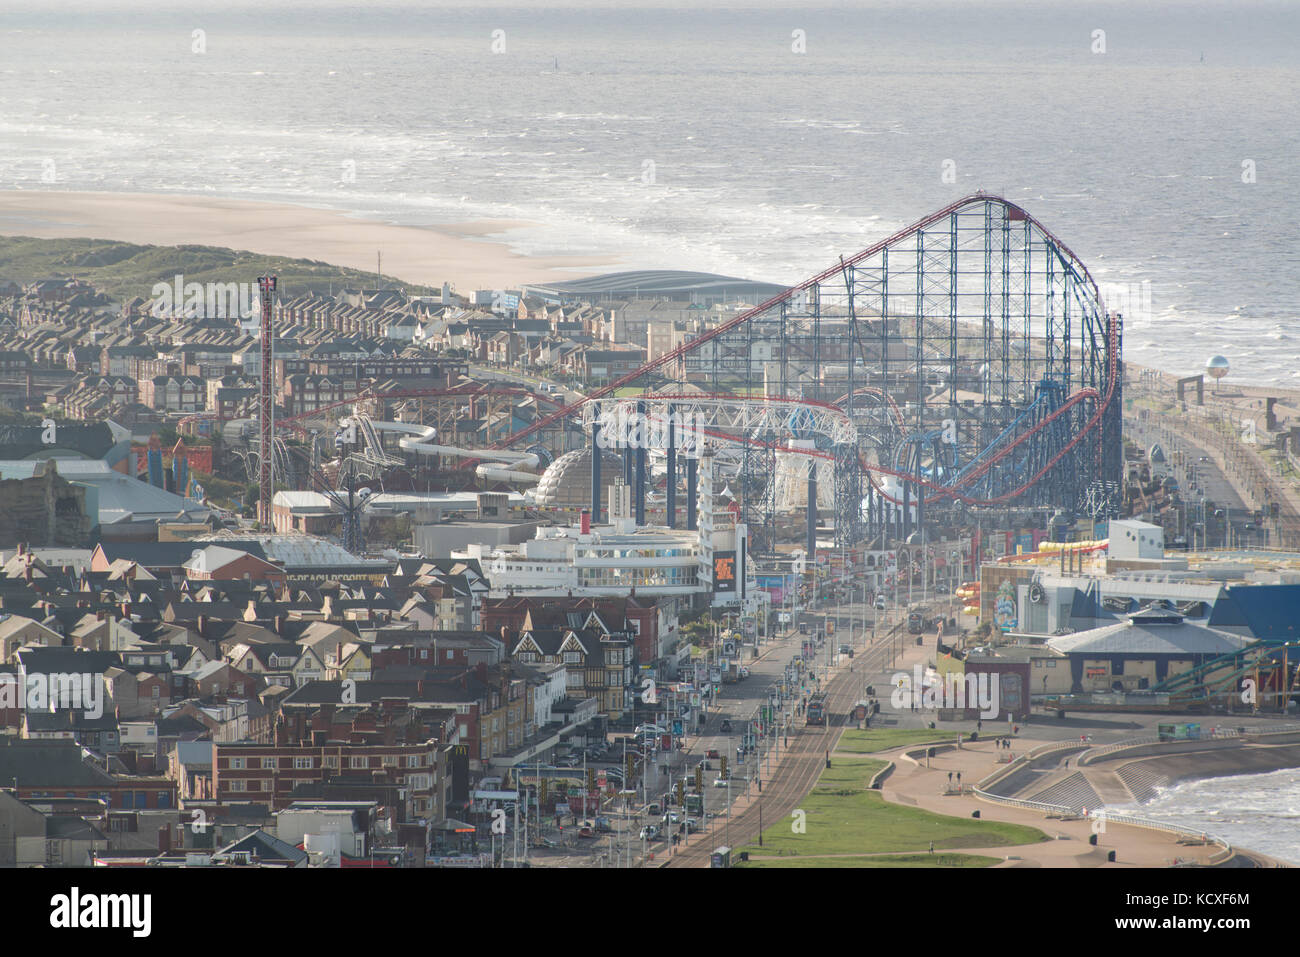 Image of Blackpool Pleasure beach on a sunny summers afternoon. Credit Lee Ramsden / Alamy - Stock Image